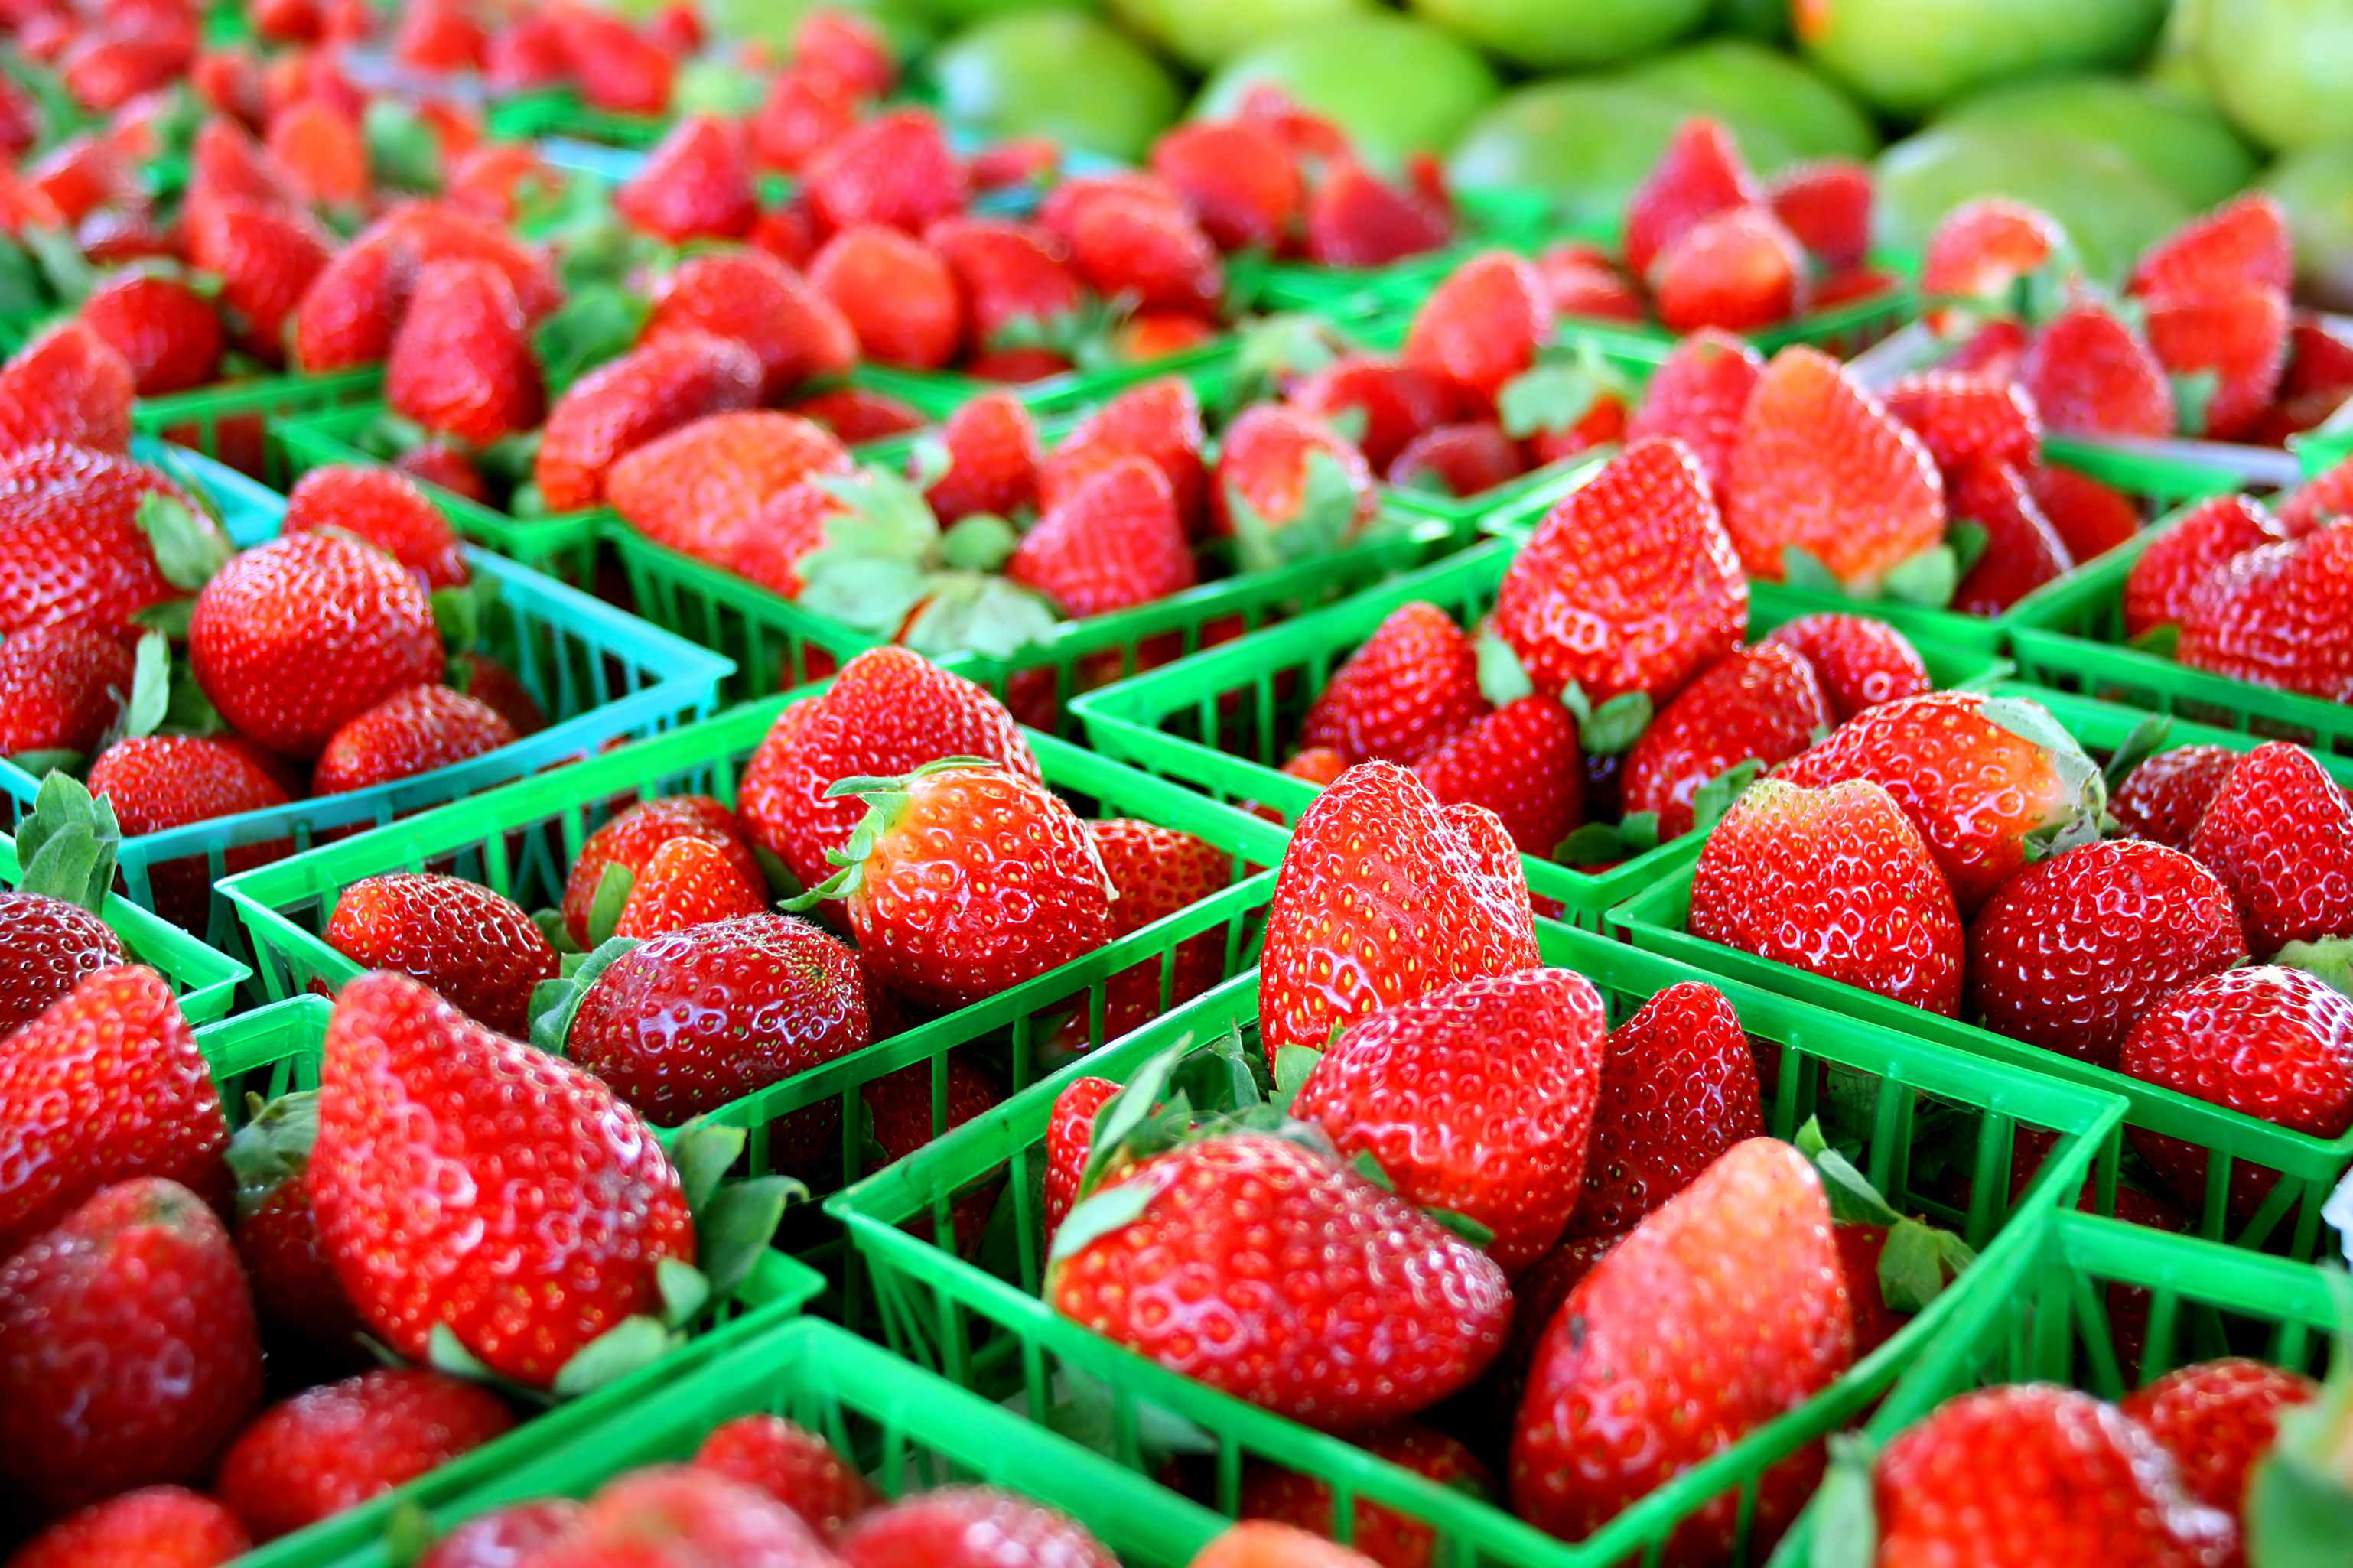 small baskets of strawberries in a fruit market